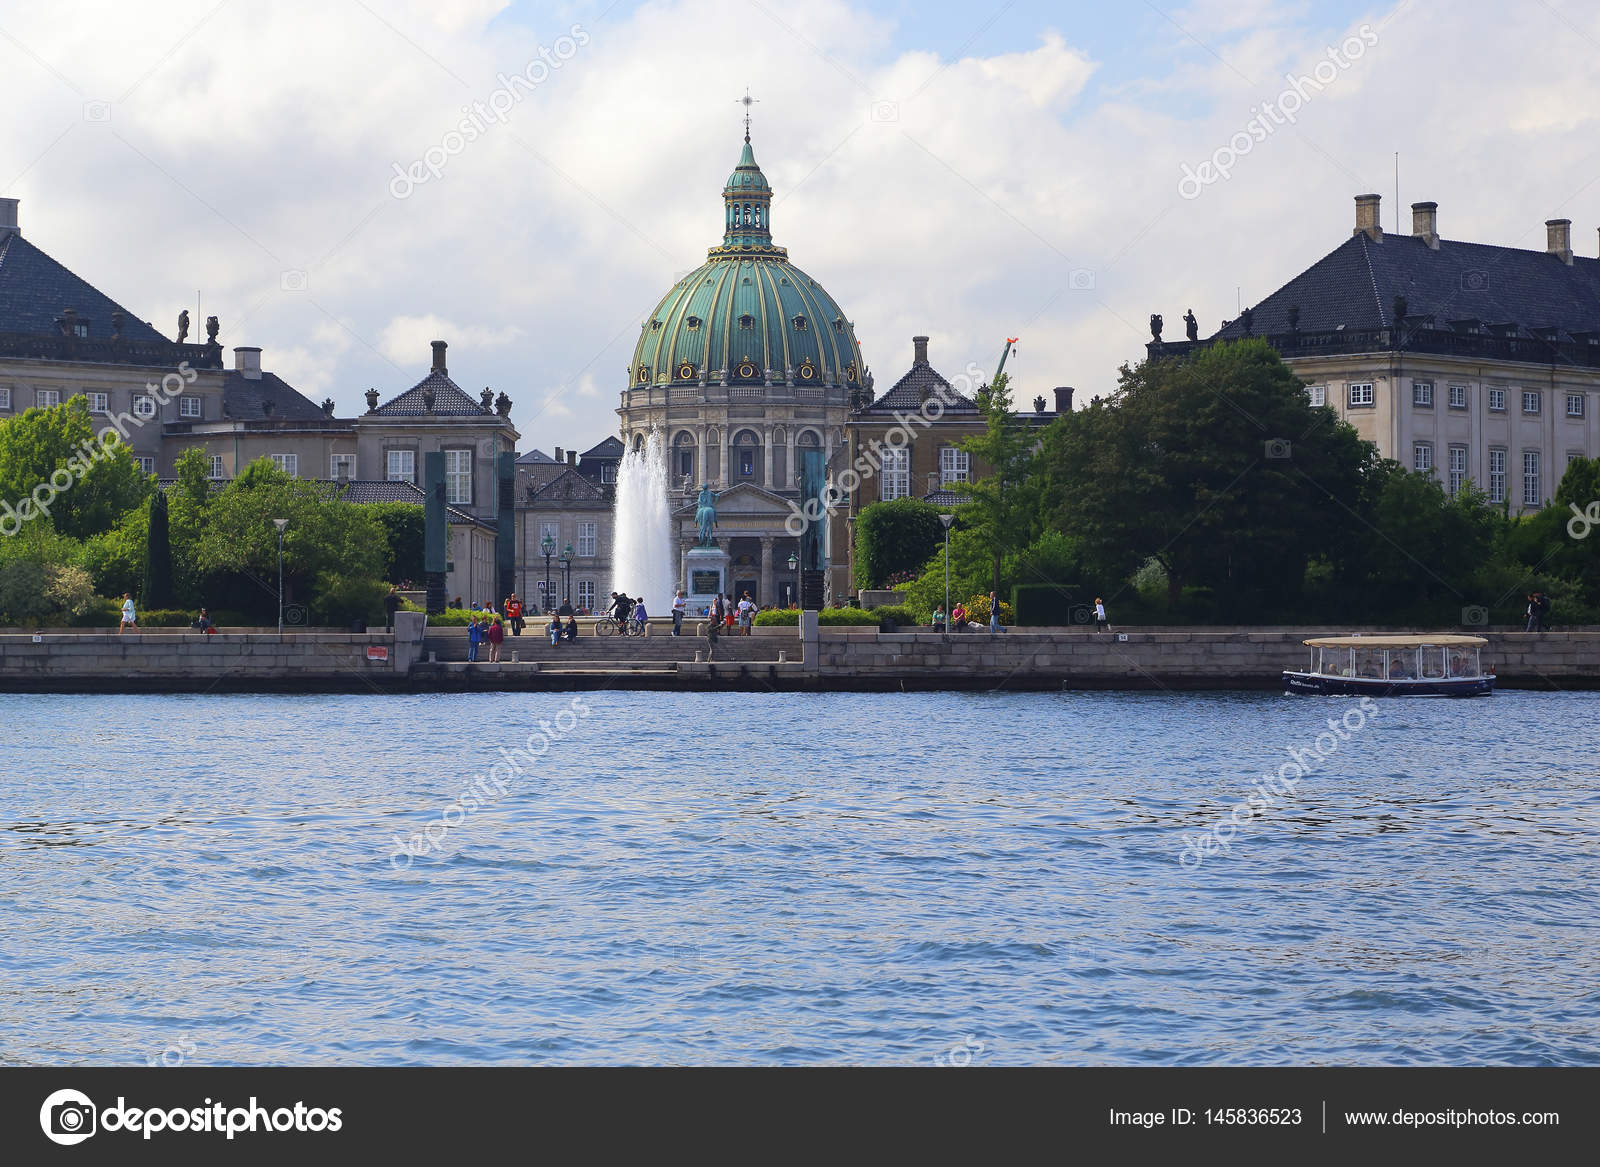 copenhagen denmark june 29 2016 it is amalienborg castle square and marble church from the seaside photo by goga18128mailru